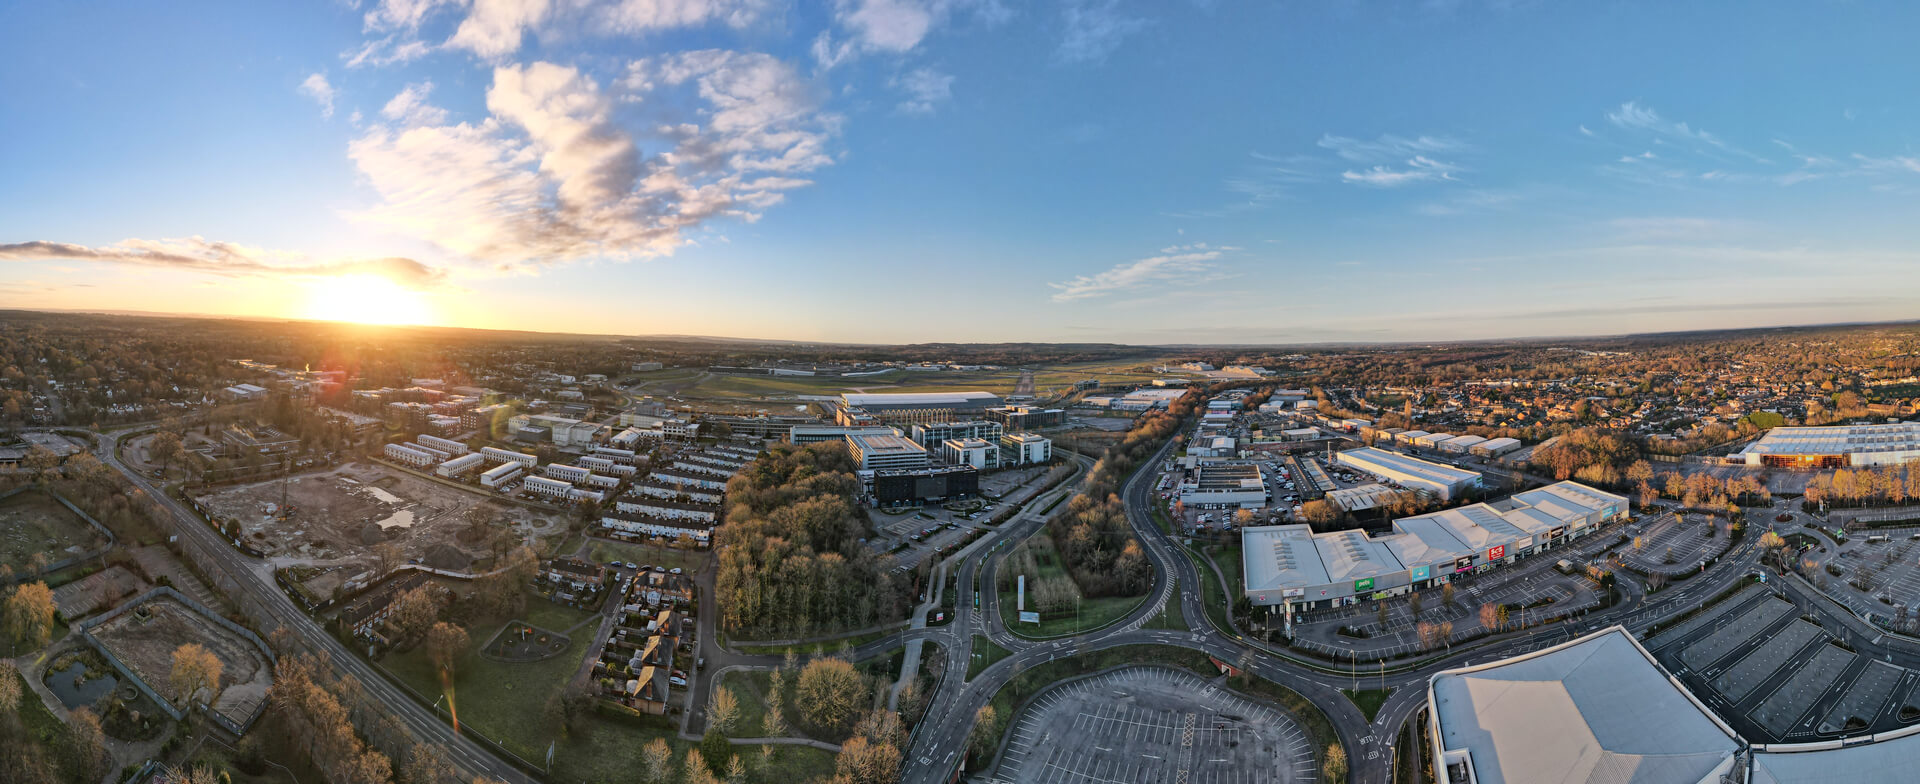 Farnborough Business Park Hampshire by drone